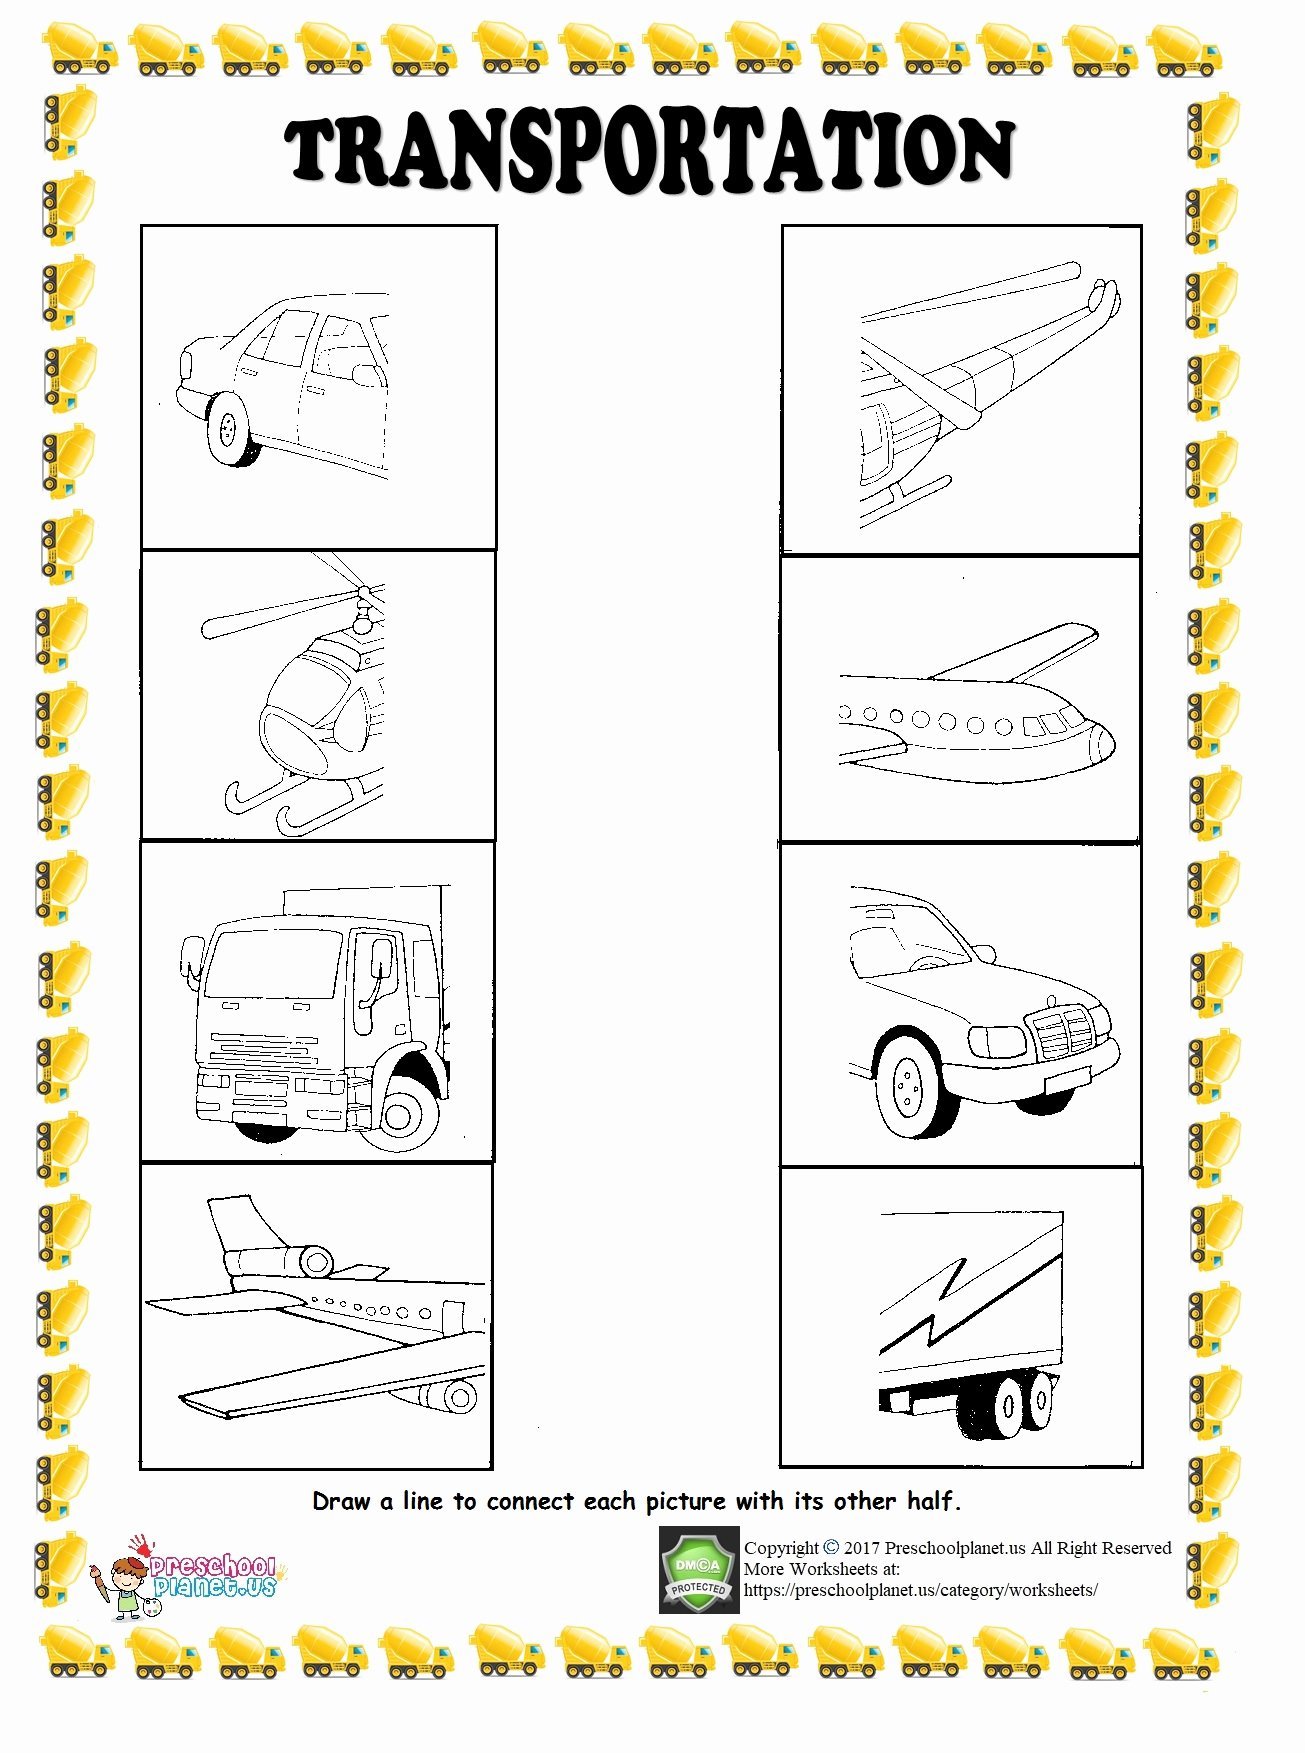 Transportation Worksheets for Preschoolers Beautiful Find Half Of Given Transportation Worksheet – Preschoolplanet